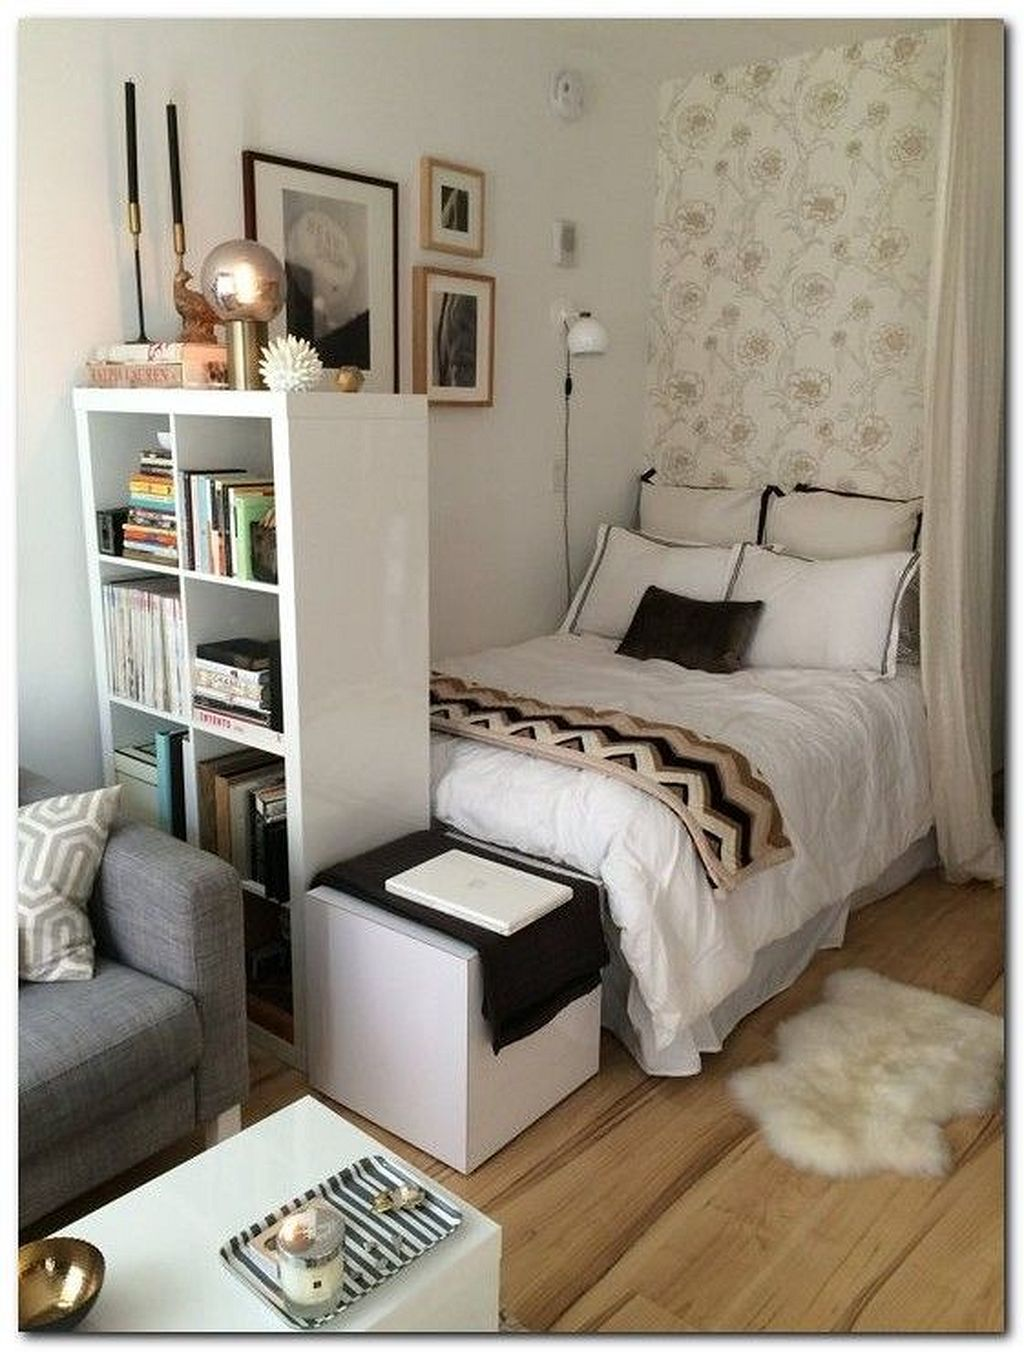 Merveilleux Great 30+ Stunning Small Bedroom Organization Ideas Ever  Https://homegardenmagz.com